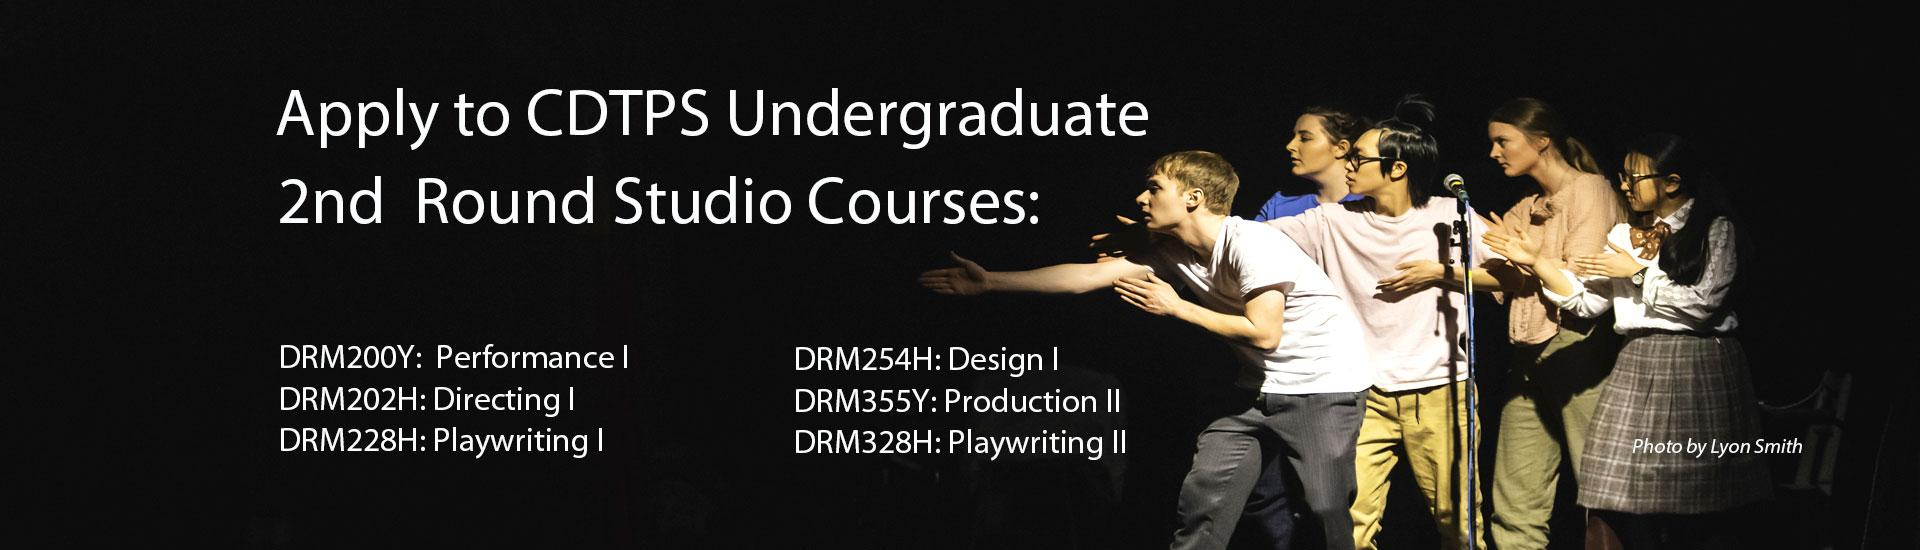 Apply for 2nd round studio courses advertisement